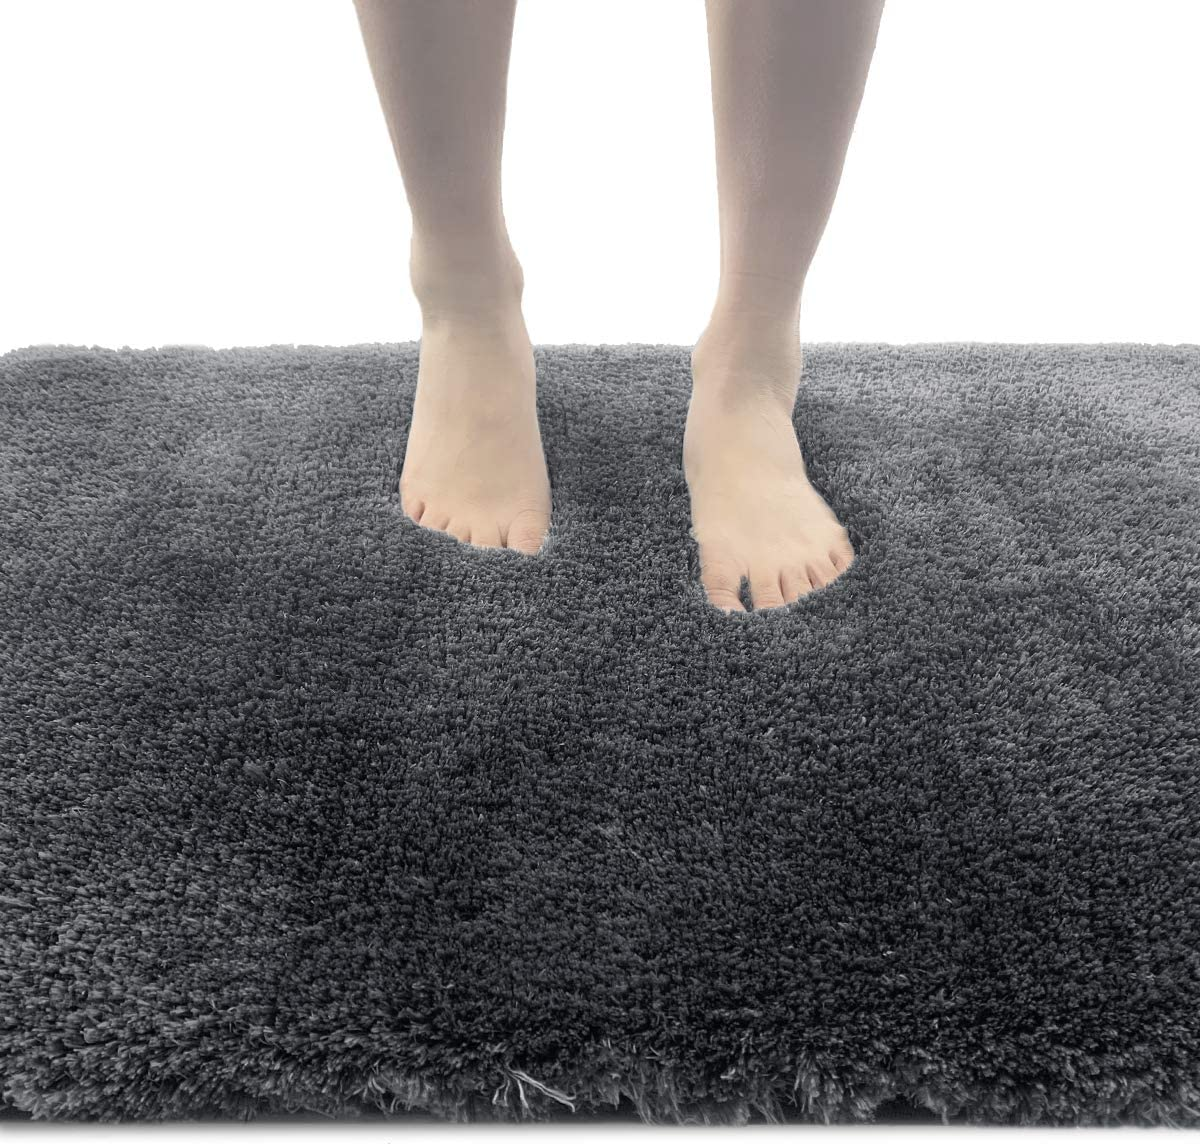 ITSOFT Non-Slip Bath Mat Water Absorbent Densely Woven Shaggy Soft Microfibers Bathroom Mat, Machine Washable, 24 x 39 Inches Gray